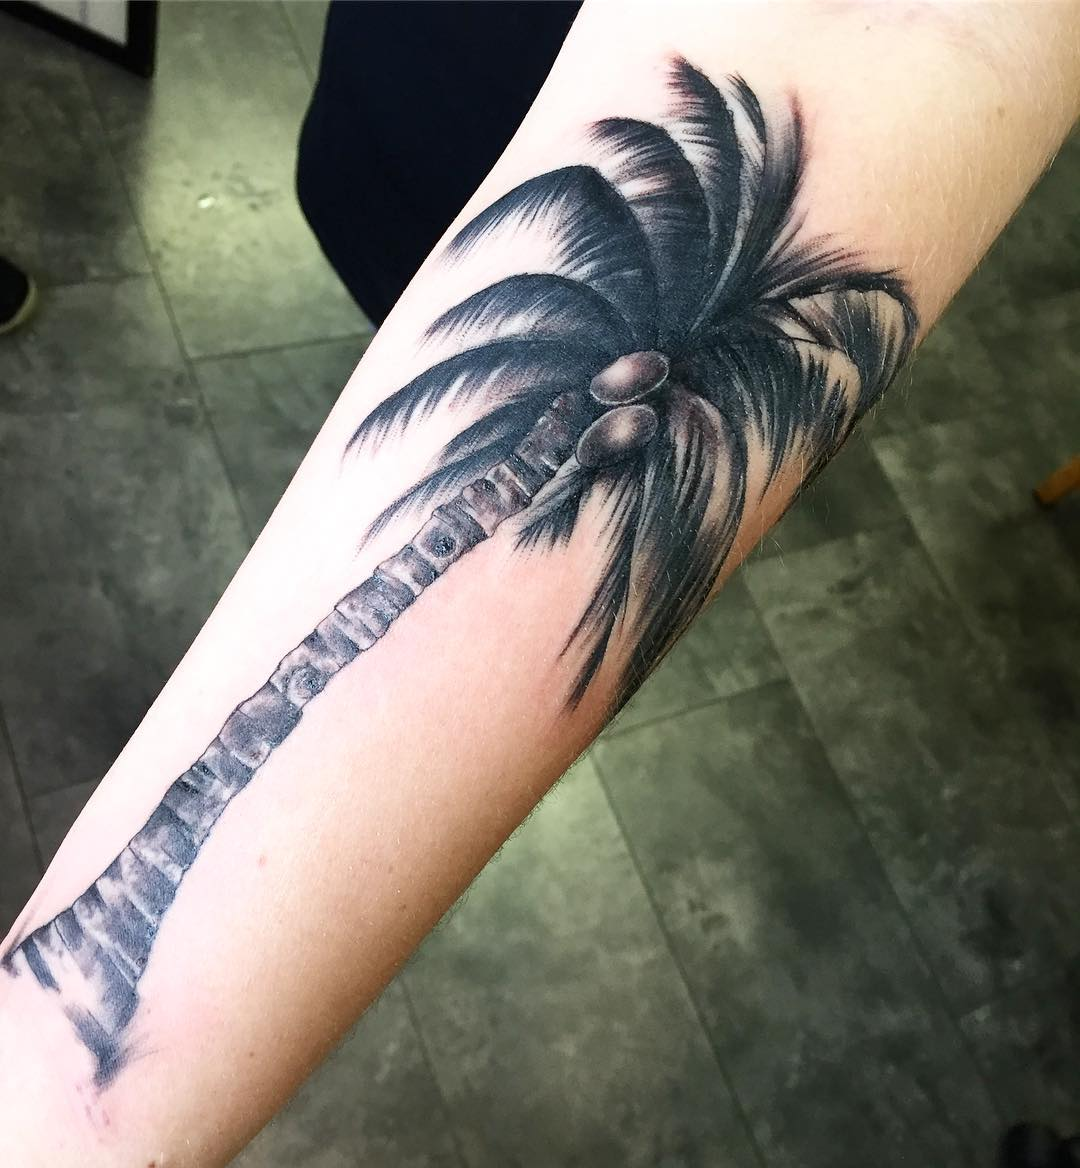 Dark Tall Palm Tree Tattoo For Men On Legs Tattoos Ideas And Designs